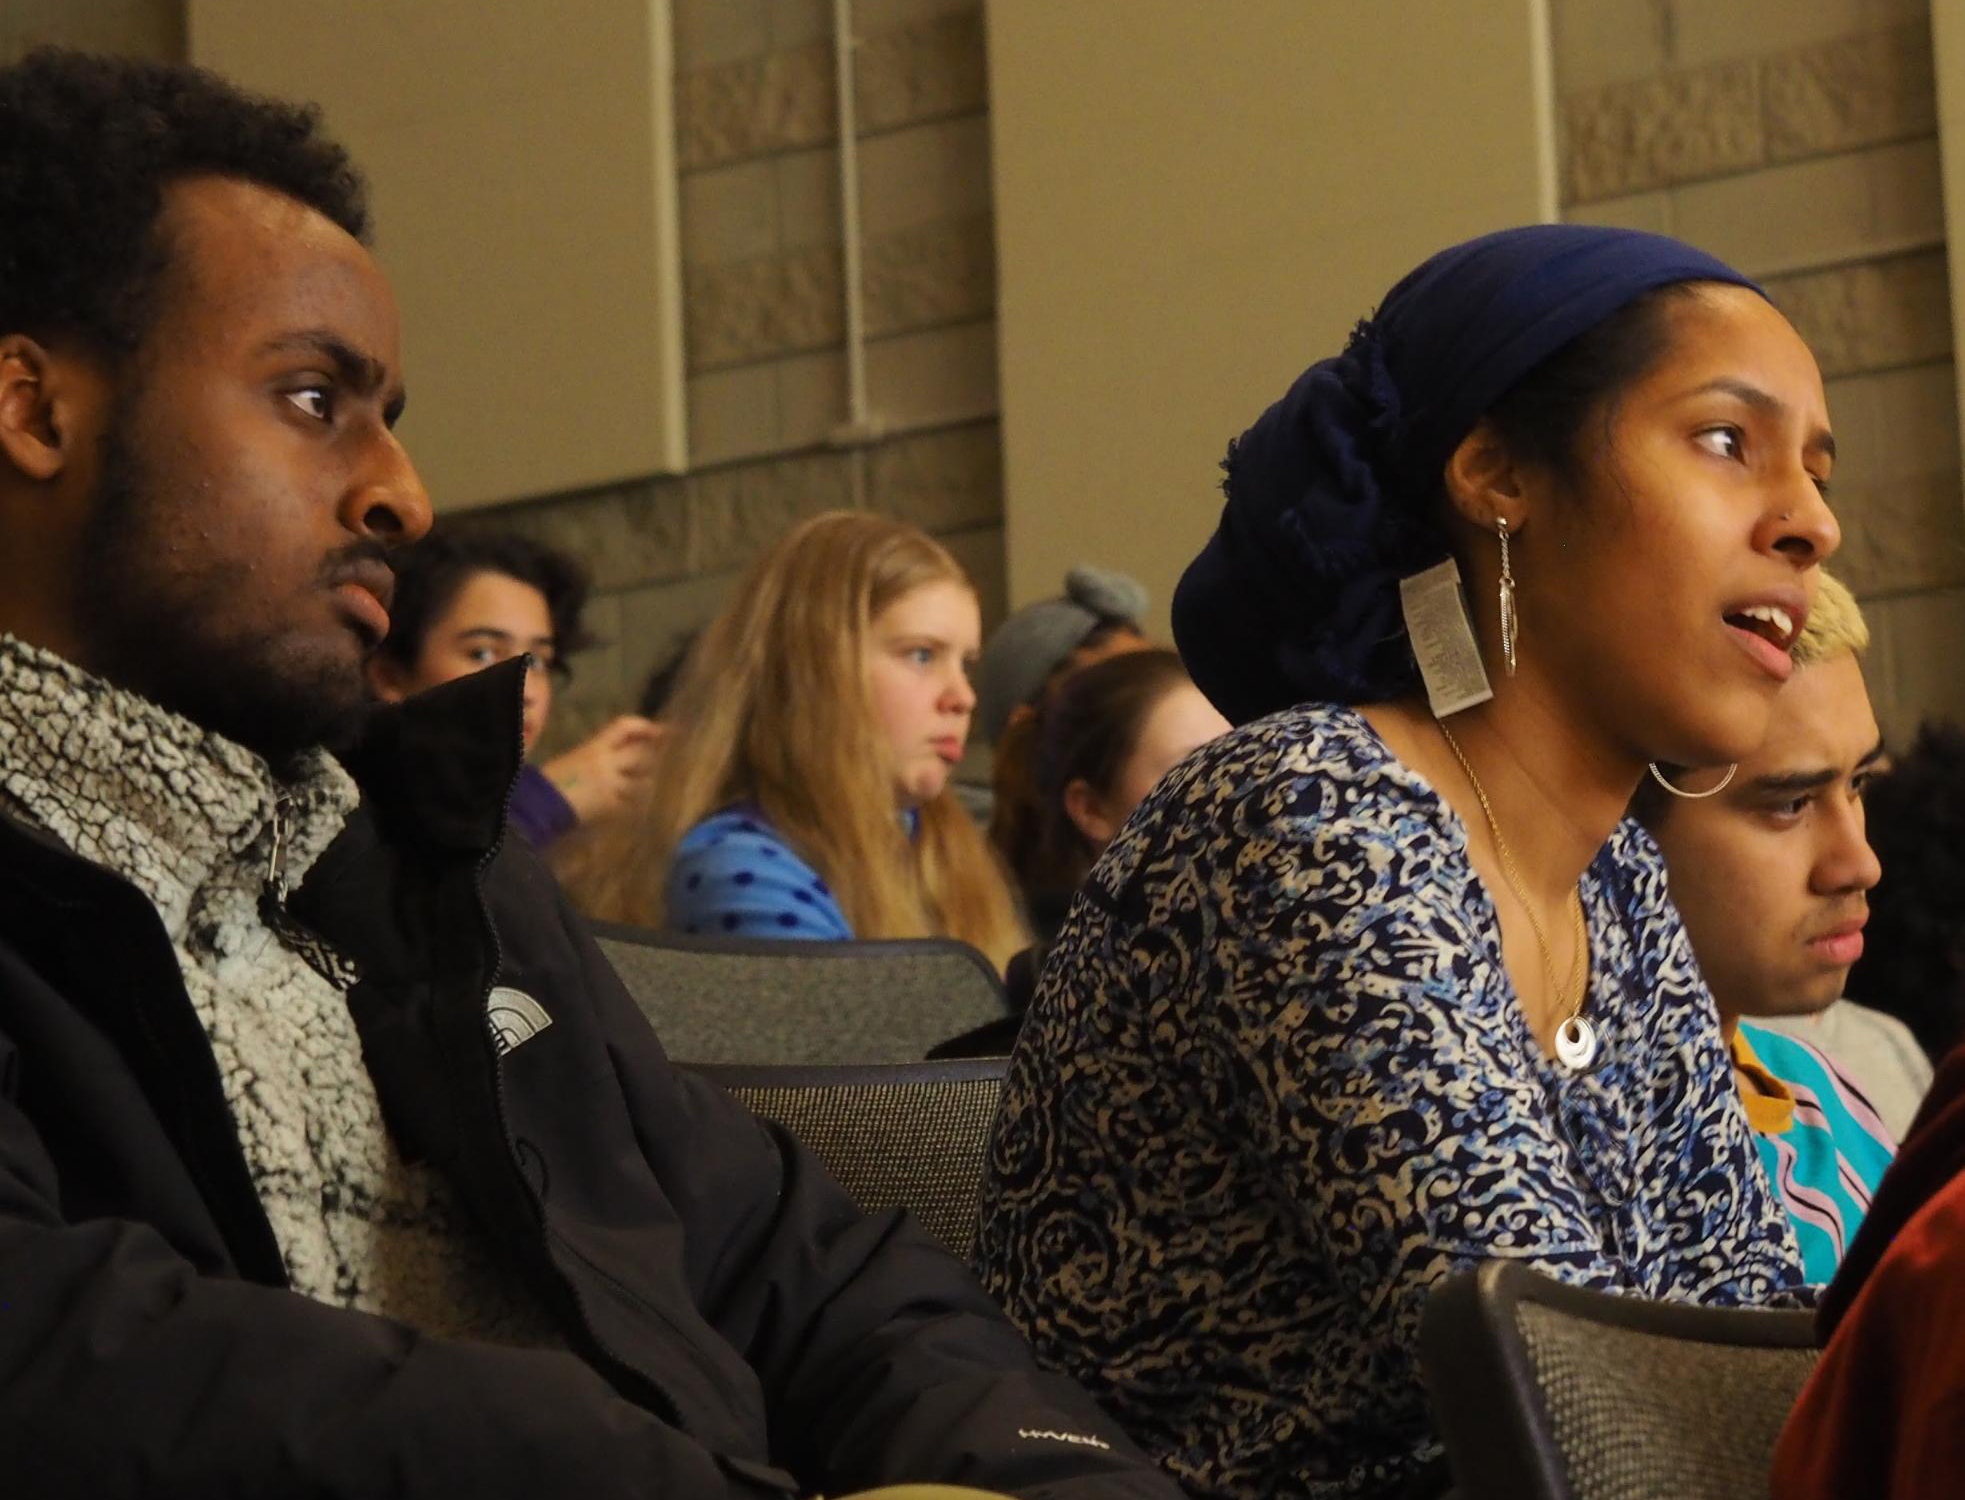 Audience members listen to a poet during the BeHeard Youth Poetry Slam. Finalists go on to represent Minnesota at the Brave New Voices International Youth Poetry Slam Festival in Las Vegas this summer. (April Carlson / The Metropolitan)